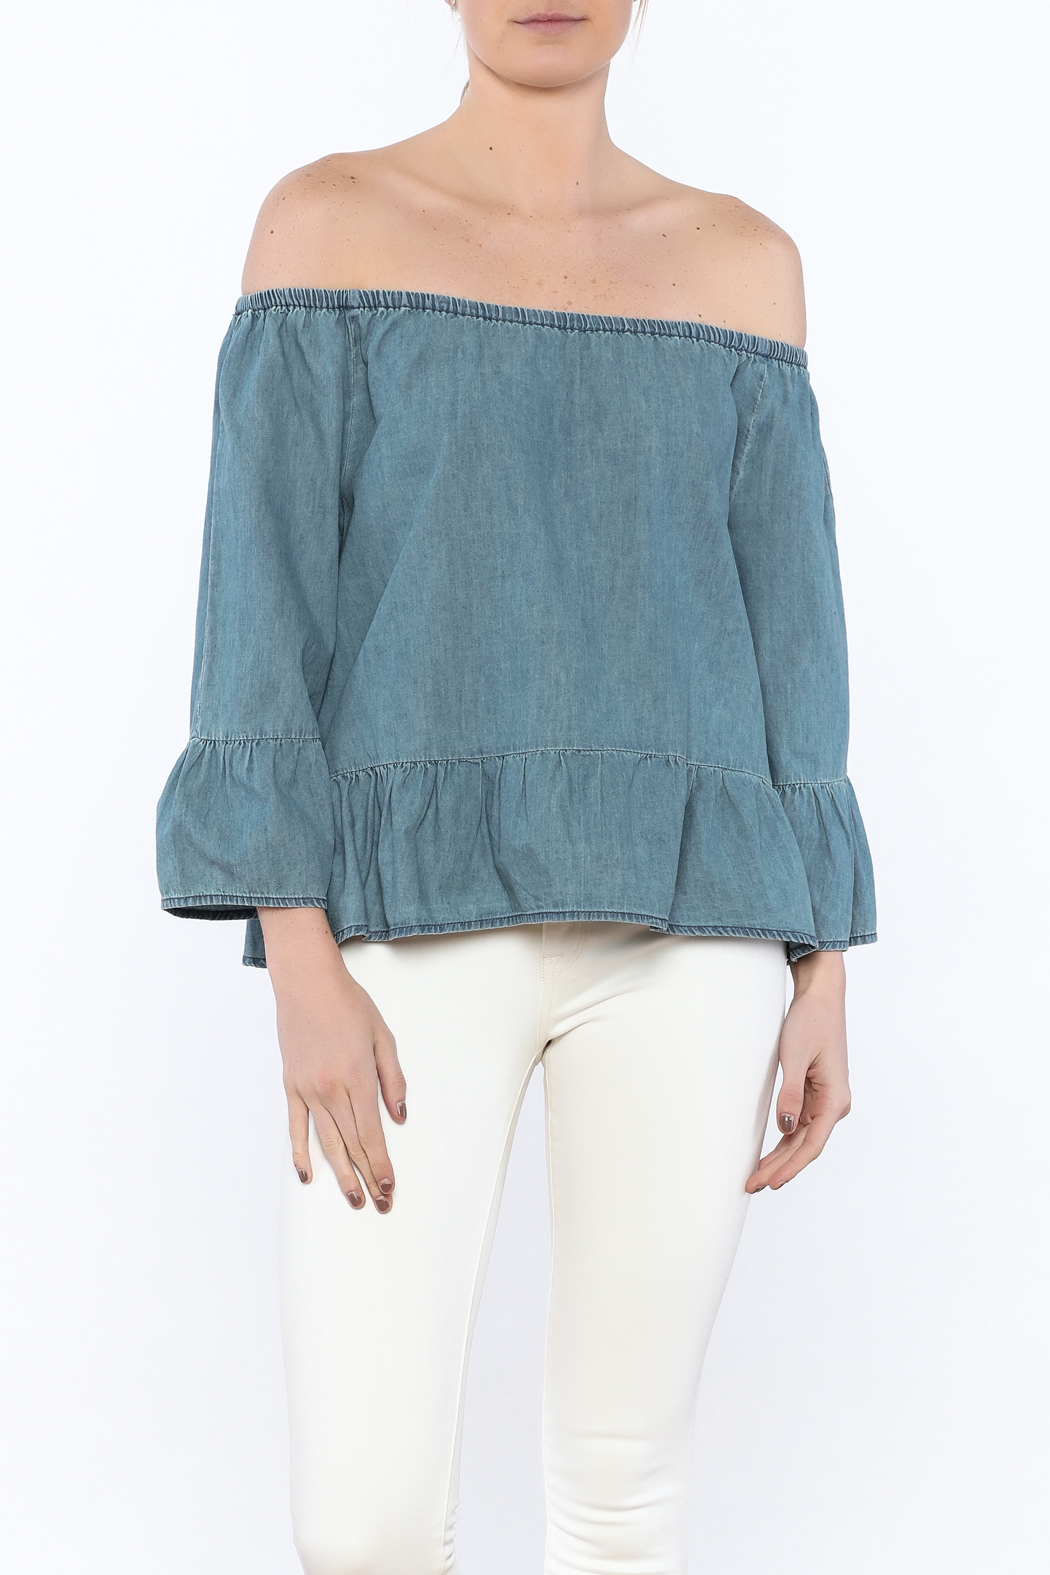 Cupcakes & Cashmere Off-Shoulder Chambray Blouse - Front Cropped Image